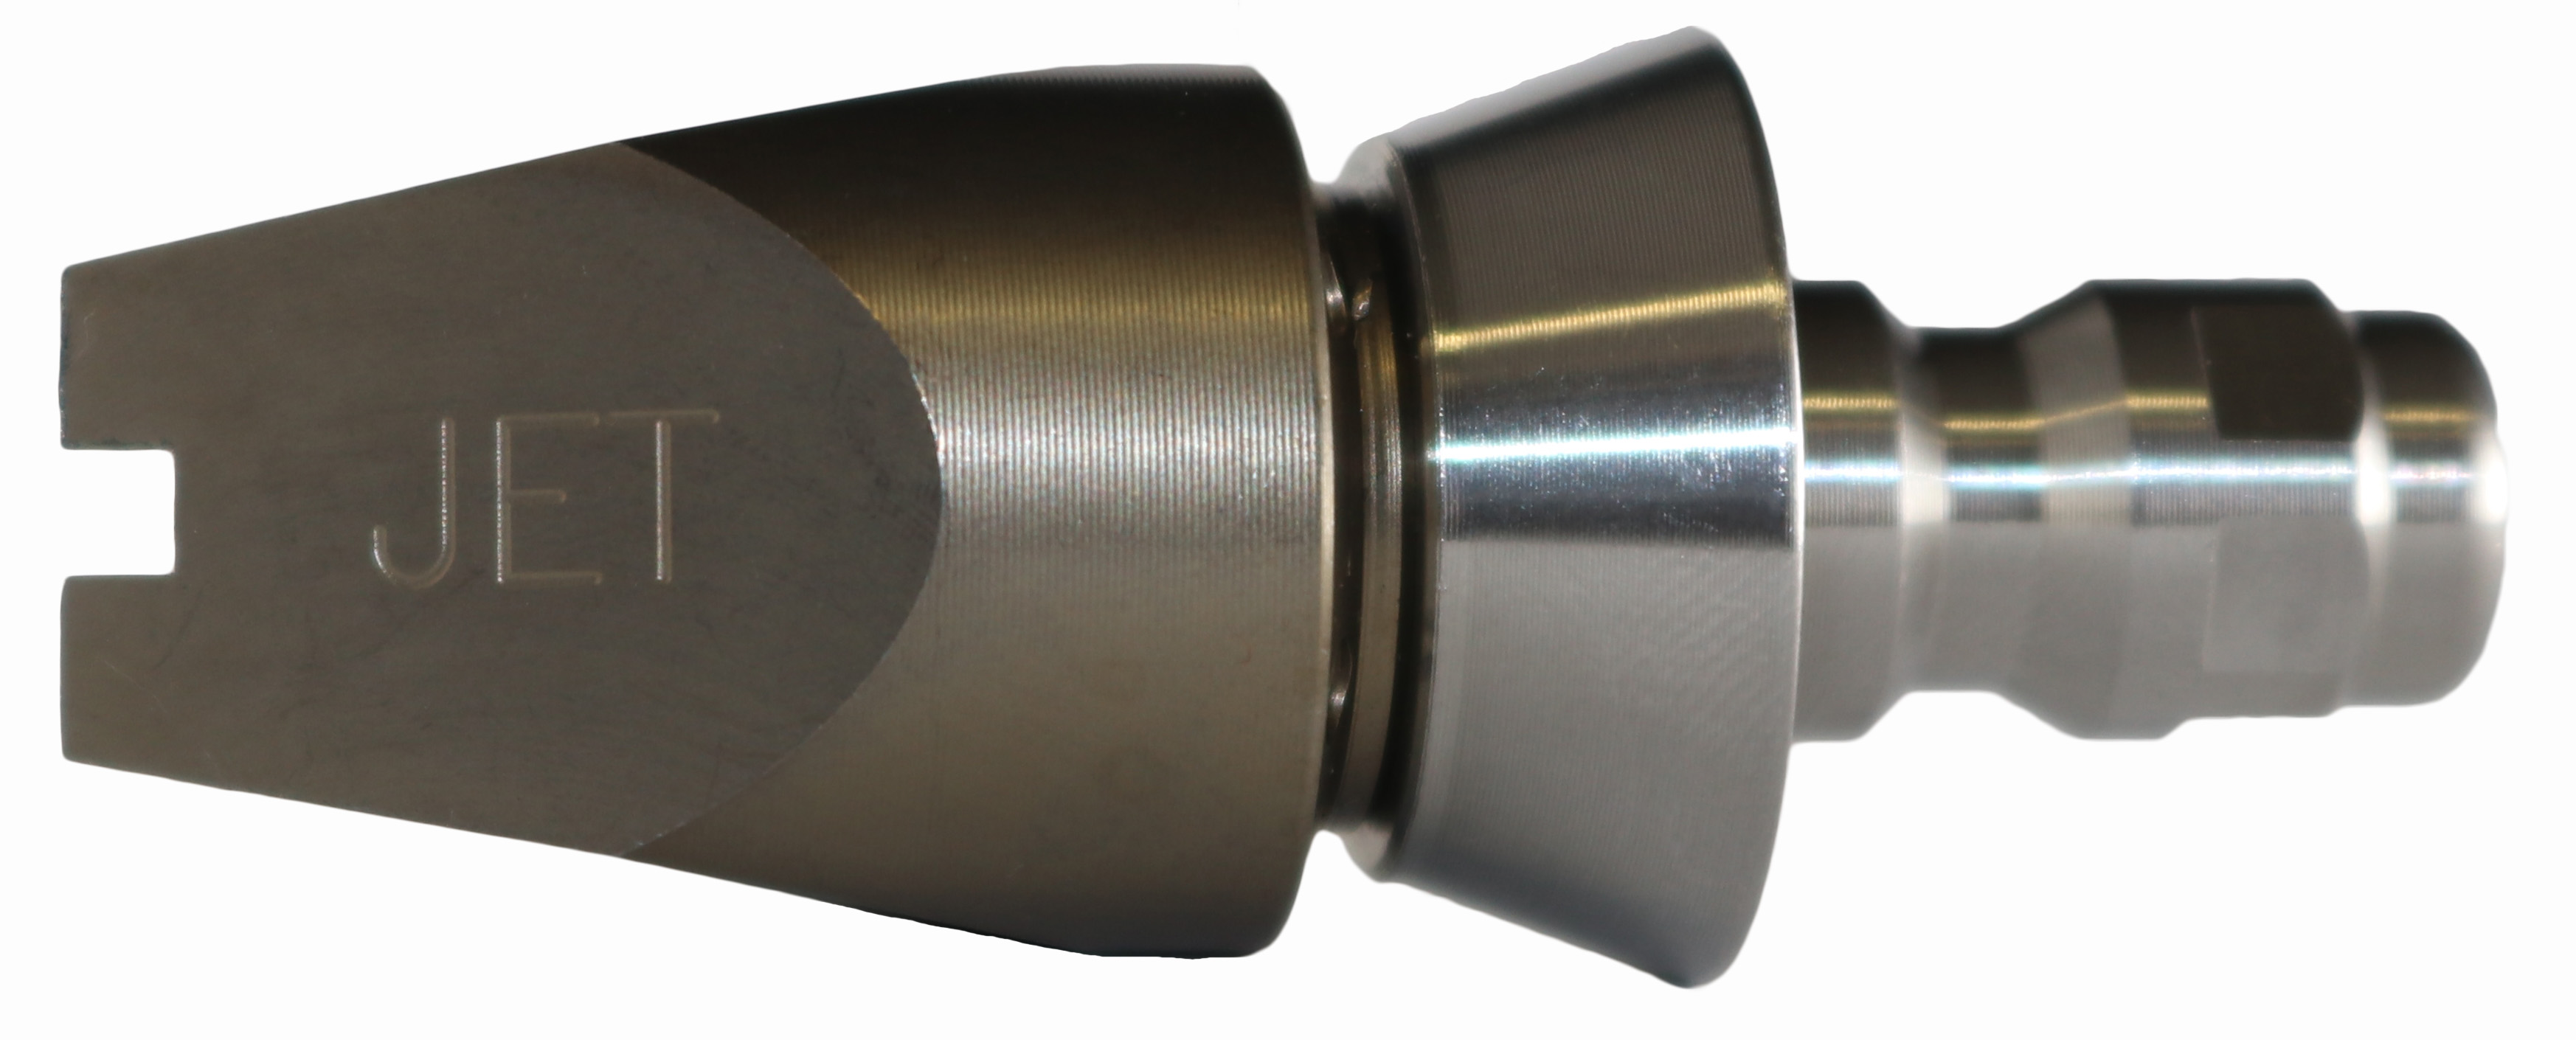 Jetaxe Nozzle Complete 6R1F with SS Adaptor